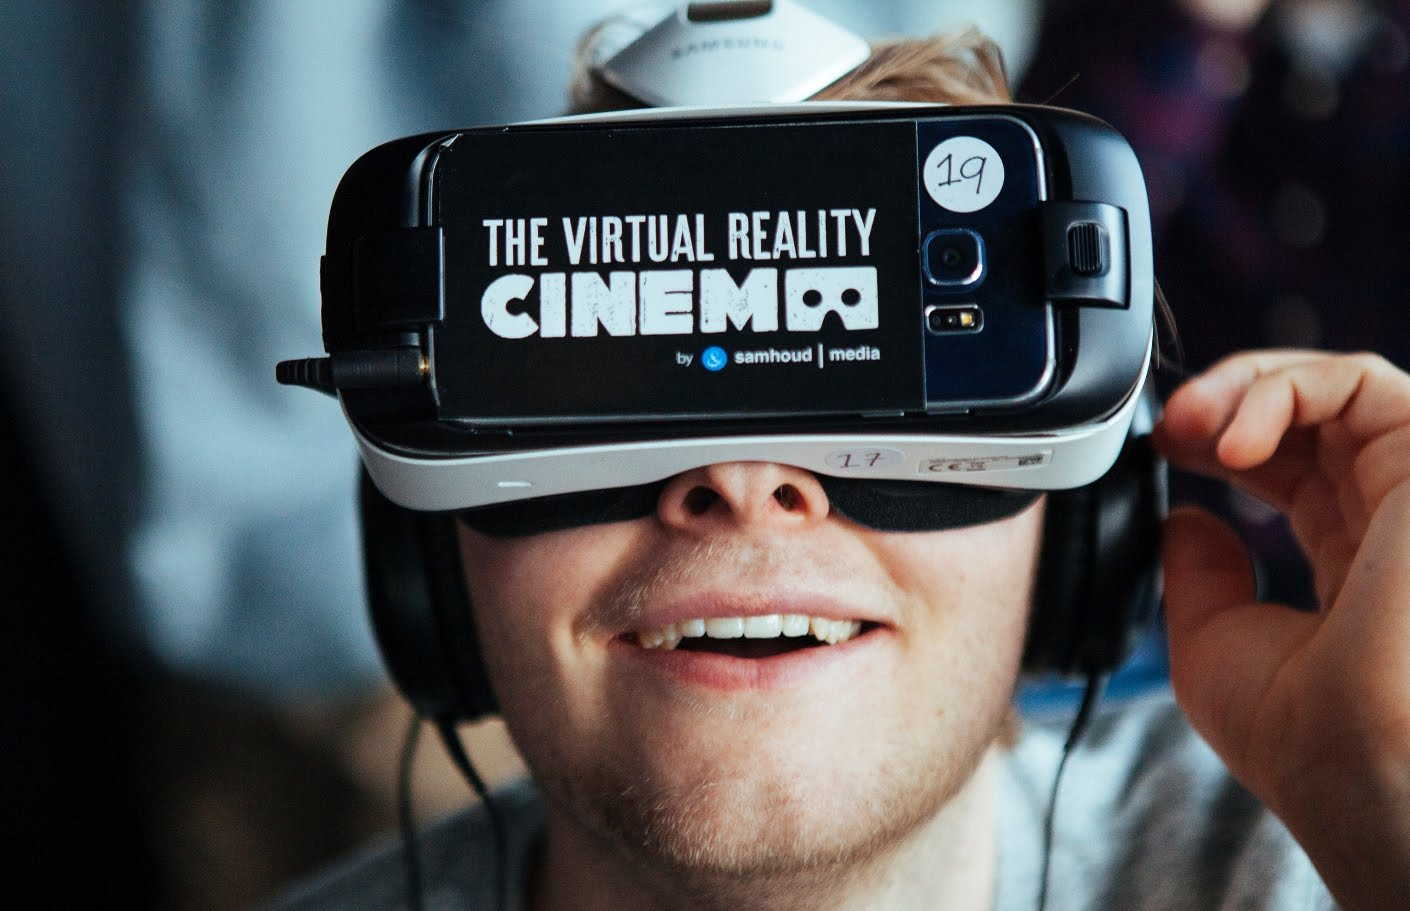 Check out Malaysia's first ever VR cinema experience